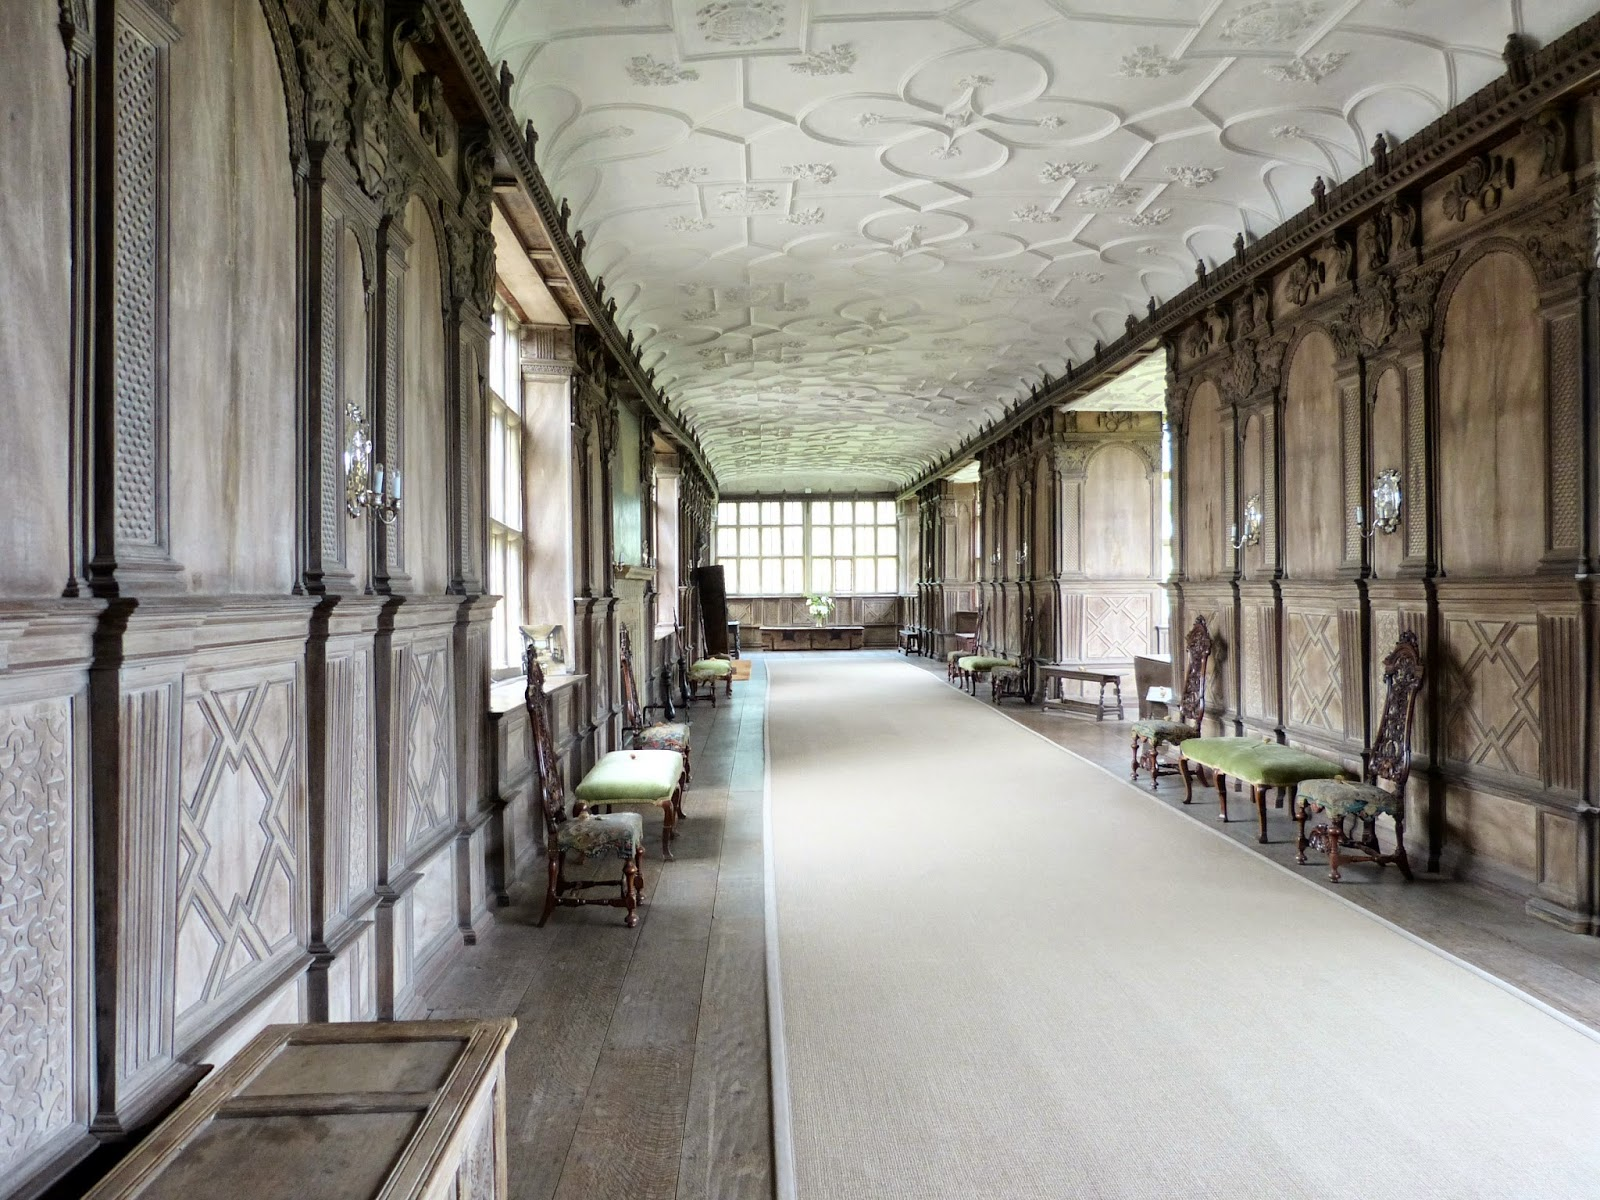 The Long Galllery, Haddon Hall